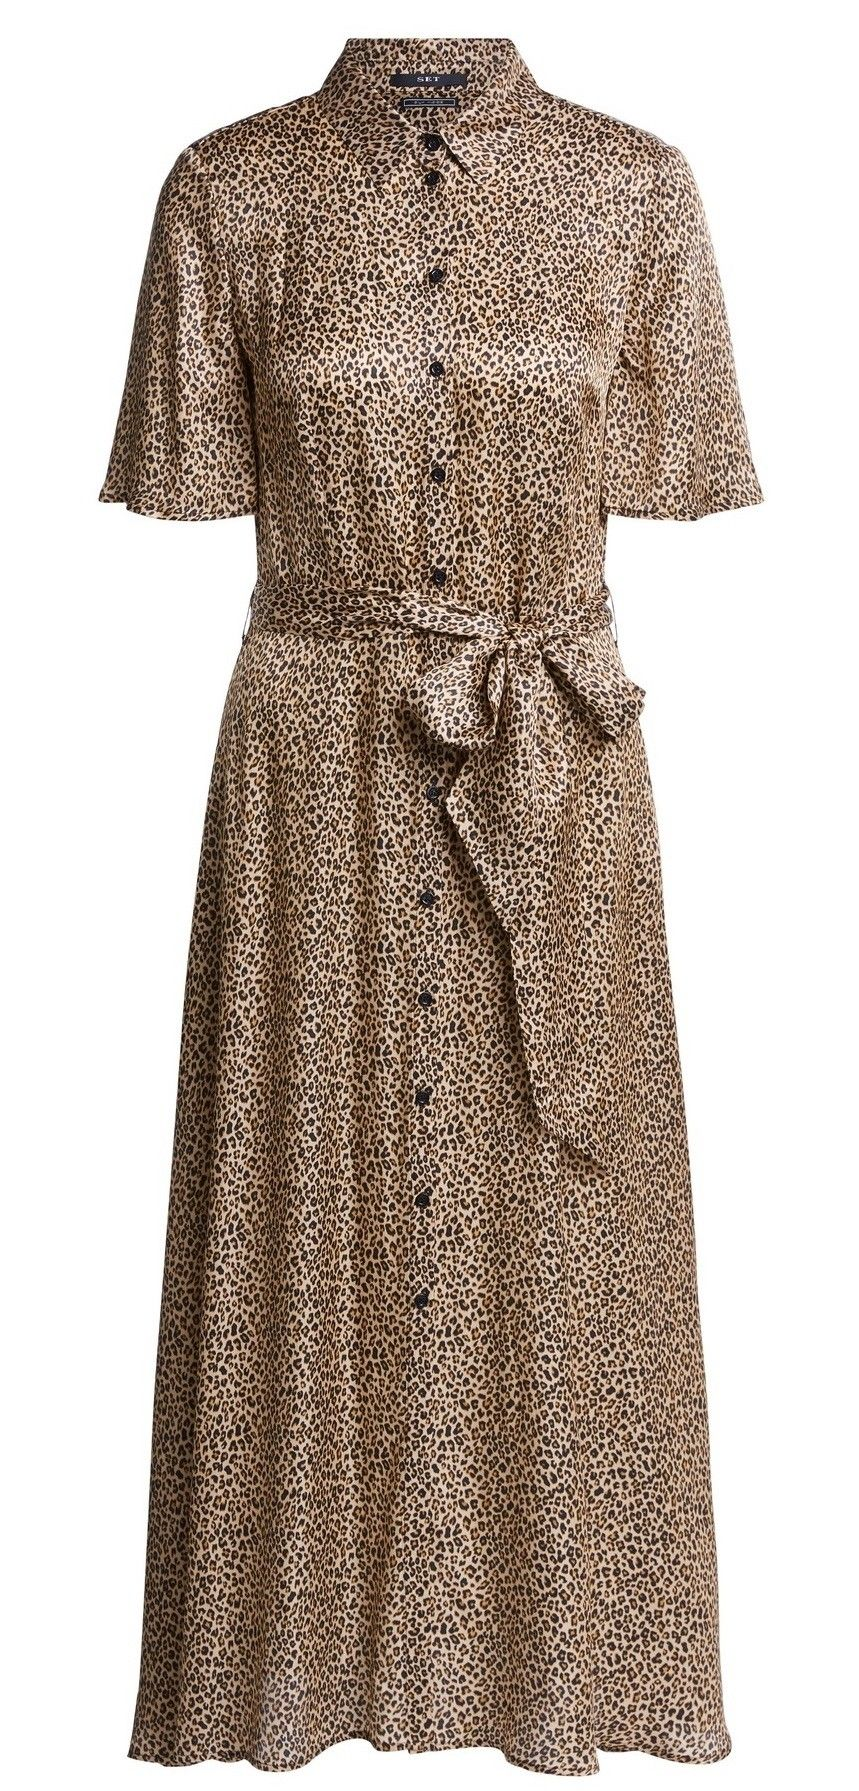 SET - Damen Kleid - Dress - Leoprint